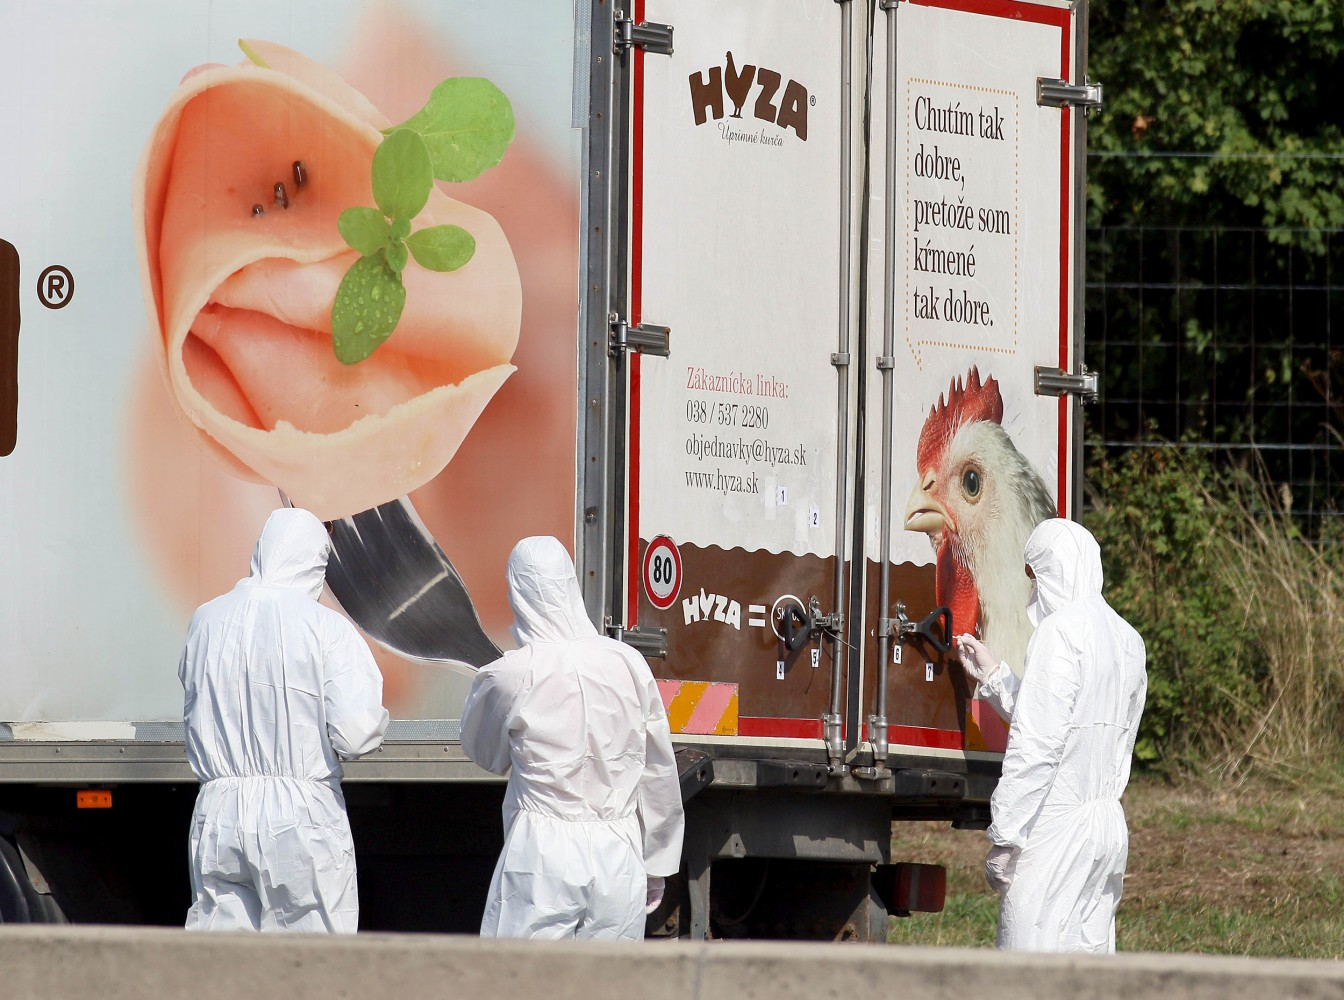 71 Dead Refugees Found in Truck on Austria Highway: Officials